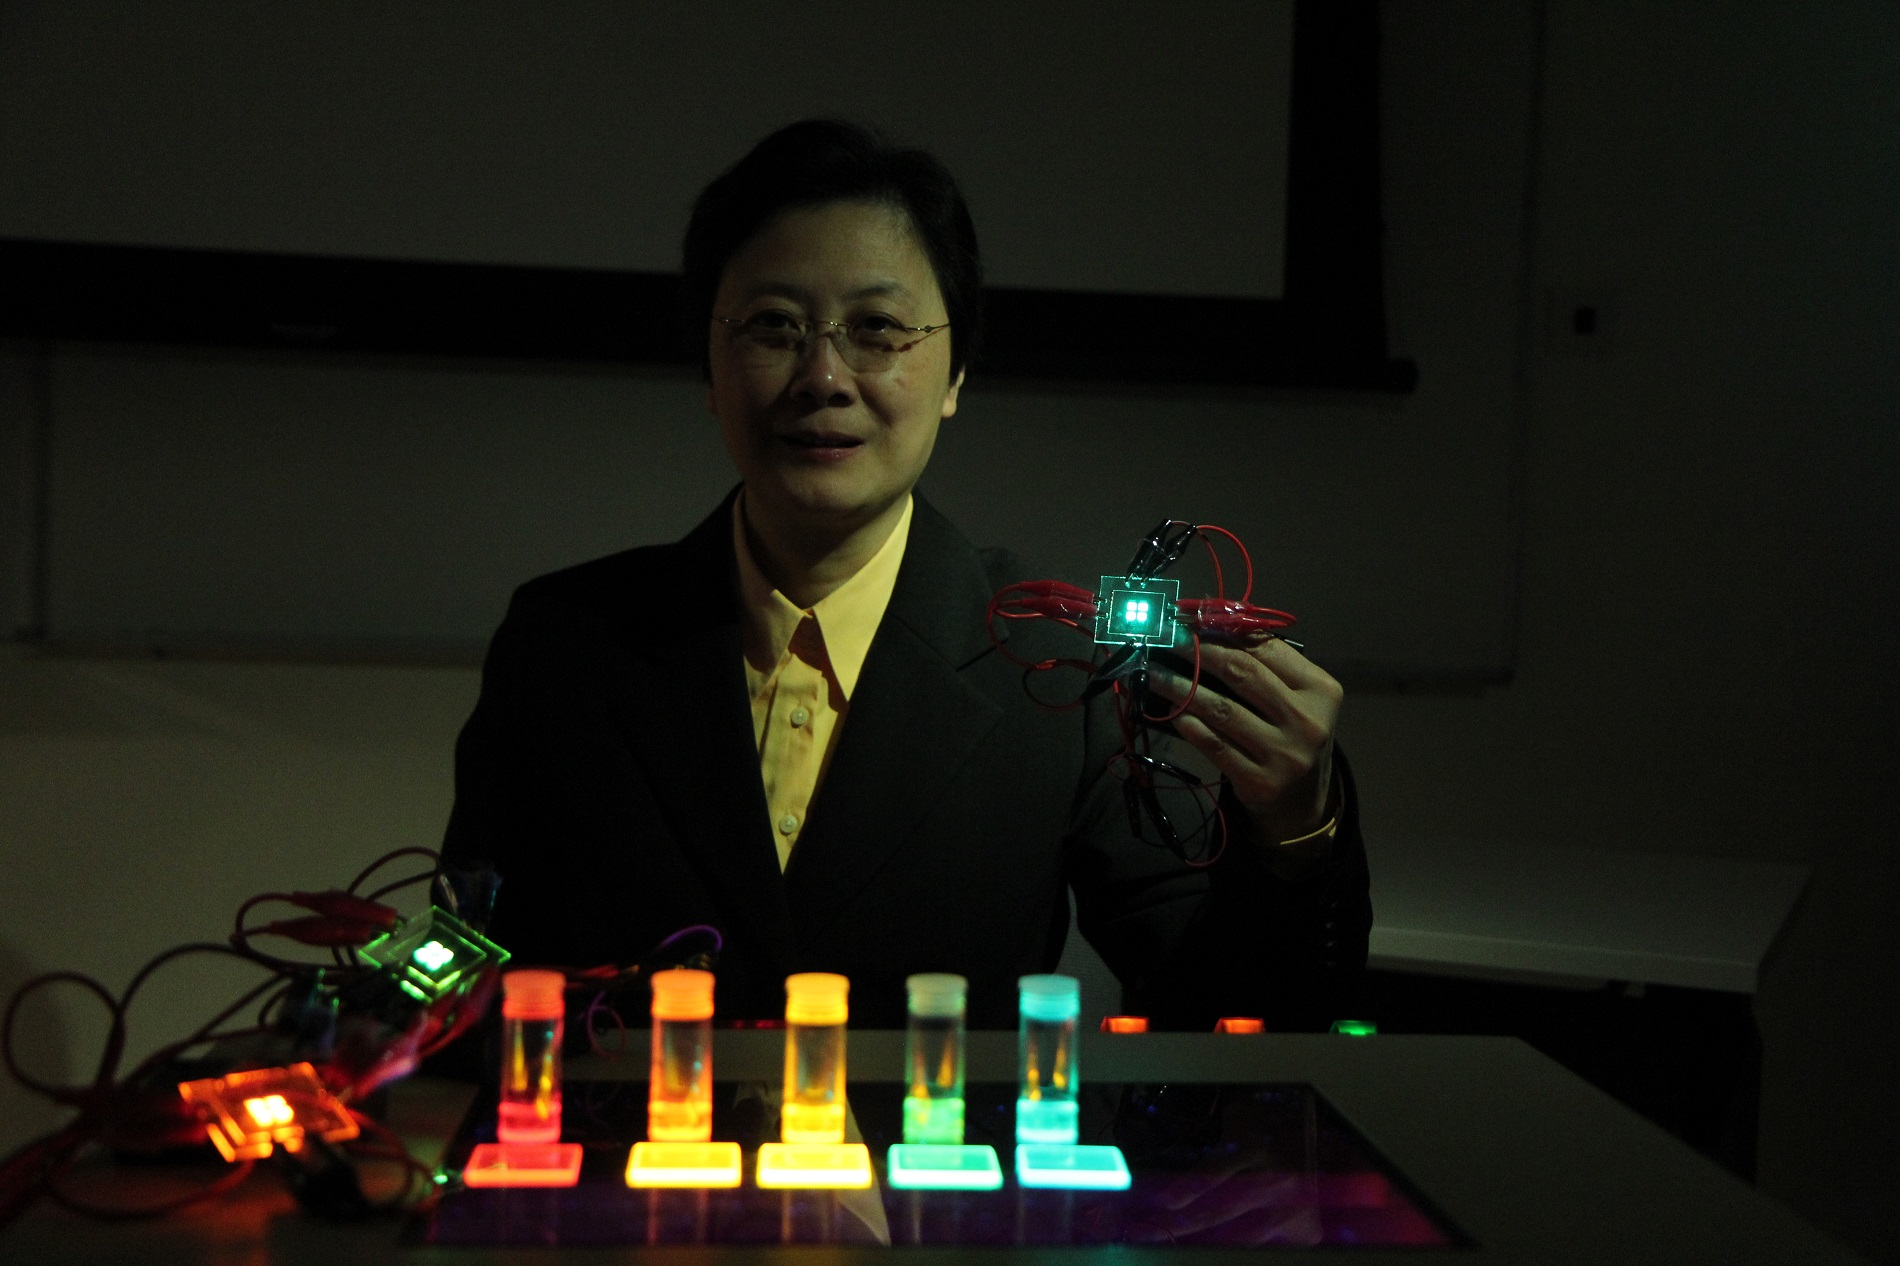 HKU Chemist Professor Vivian Yam led research generates industrial-competitive materials and technologies for Organic Light-Emitting Devices and Organic Photovoltaics